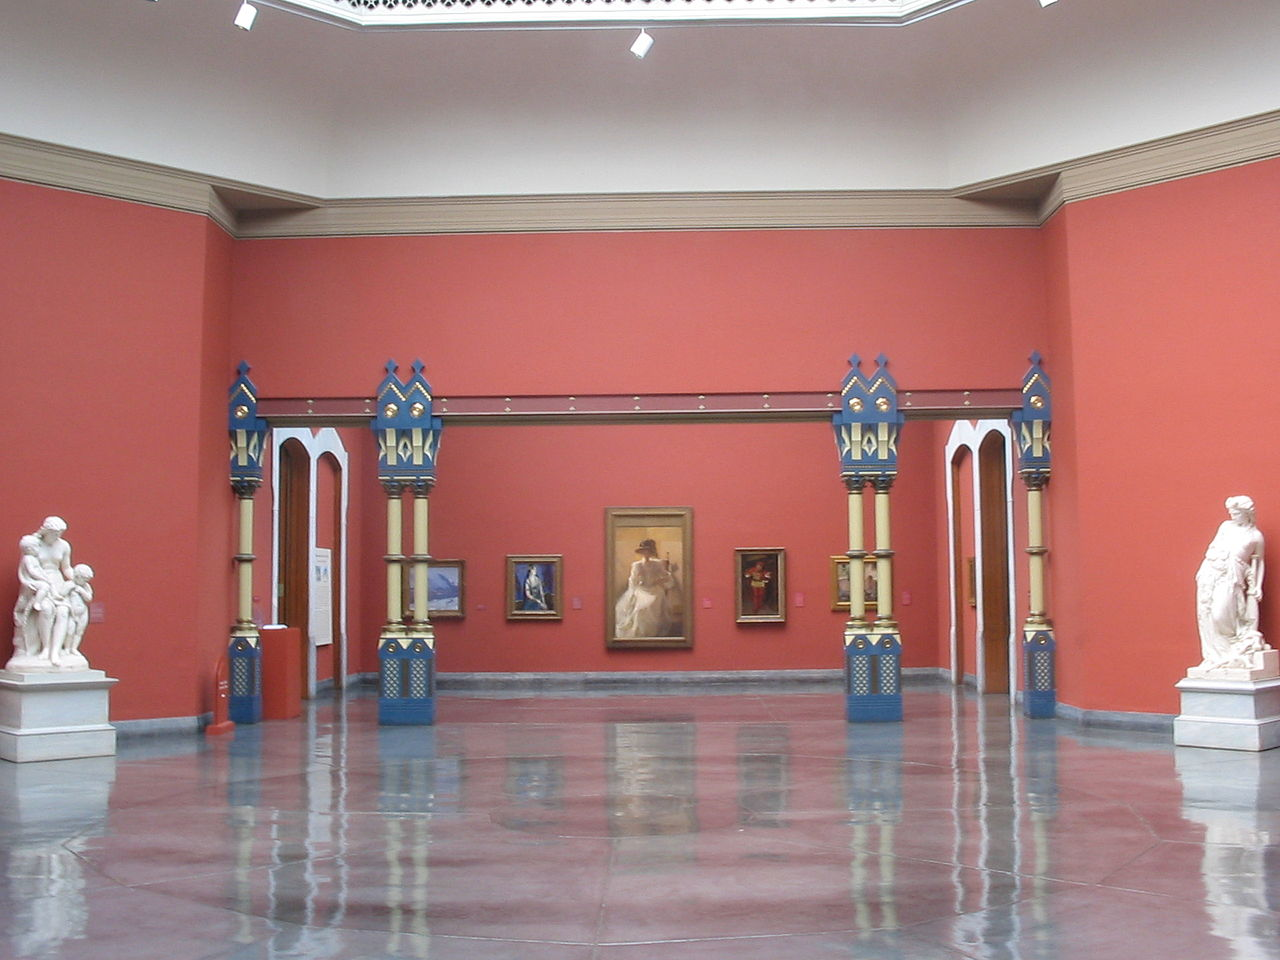 Some of the open exhibit space within the Academy that also doubles as an event space.